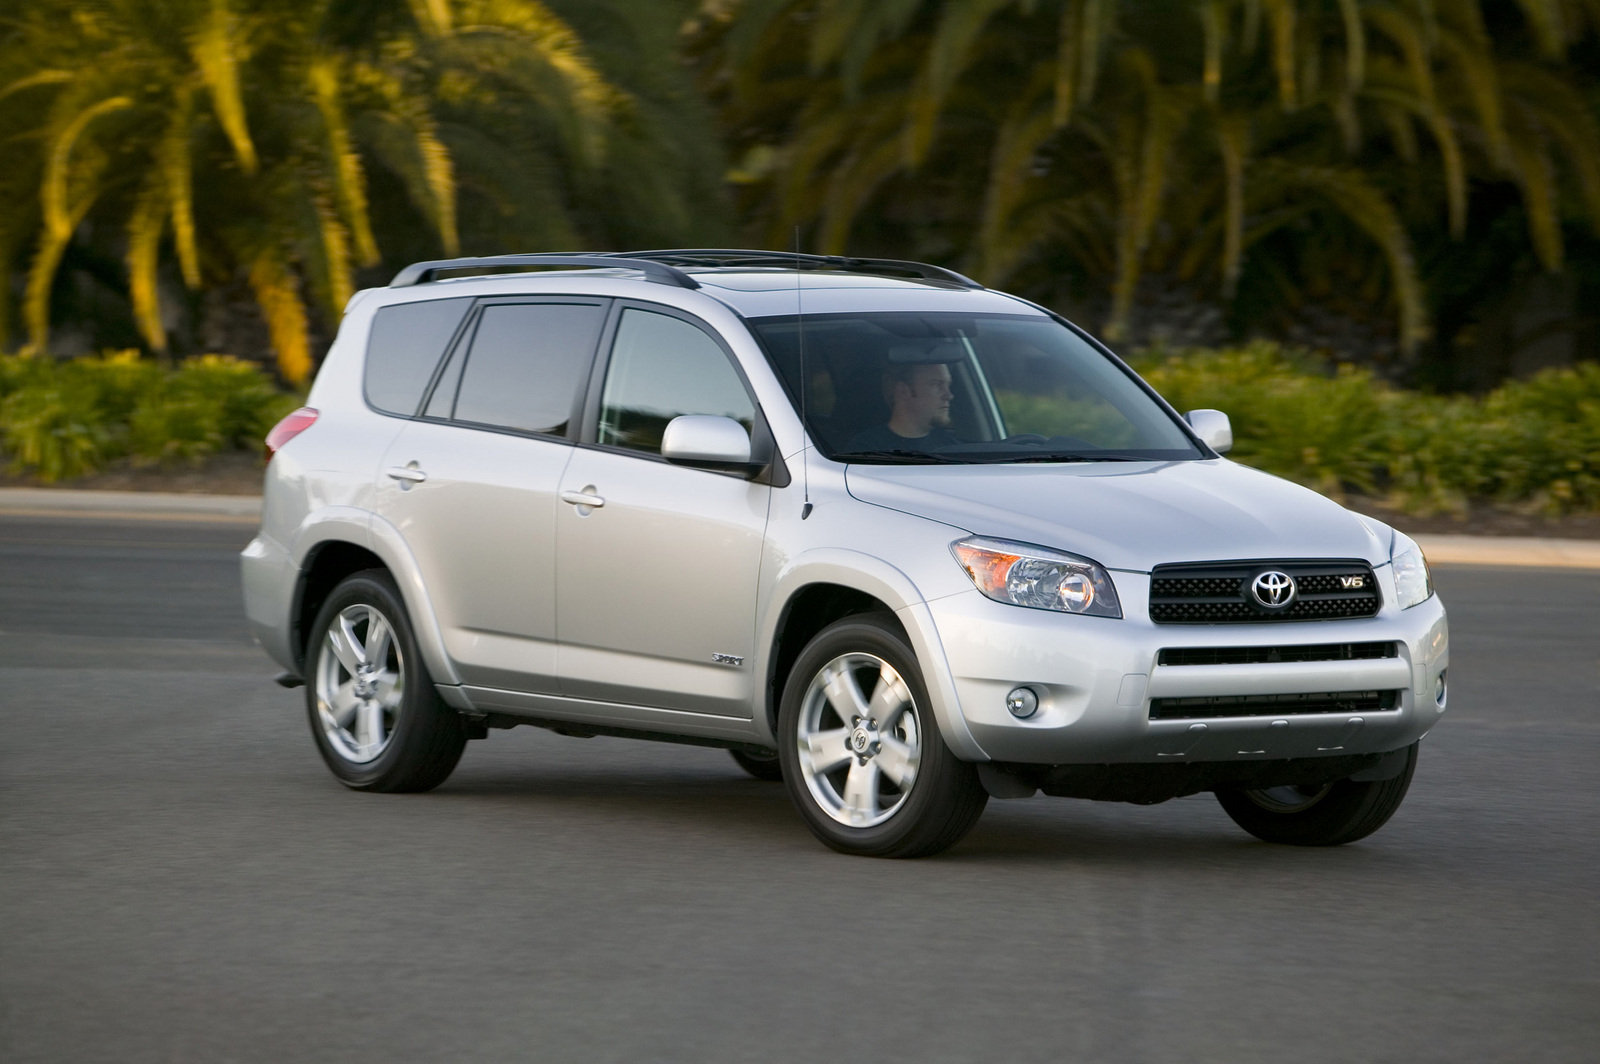 2006 toyota rav4 picture 93608 car review top speed. Black Bedroom Furniture Sets. Home Design Ideas